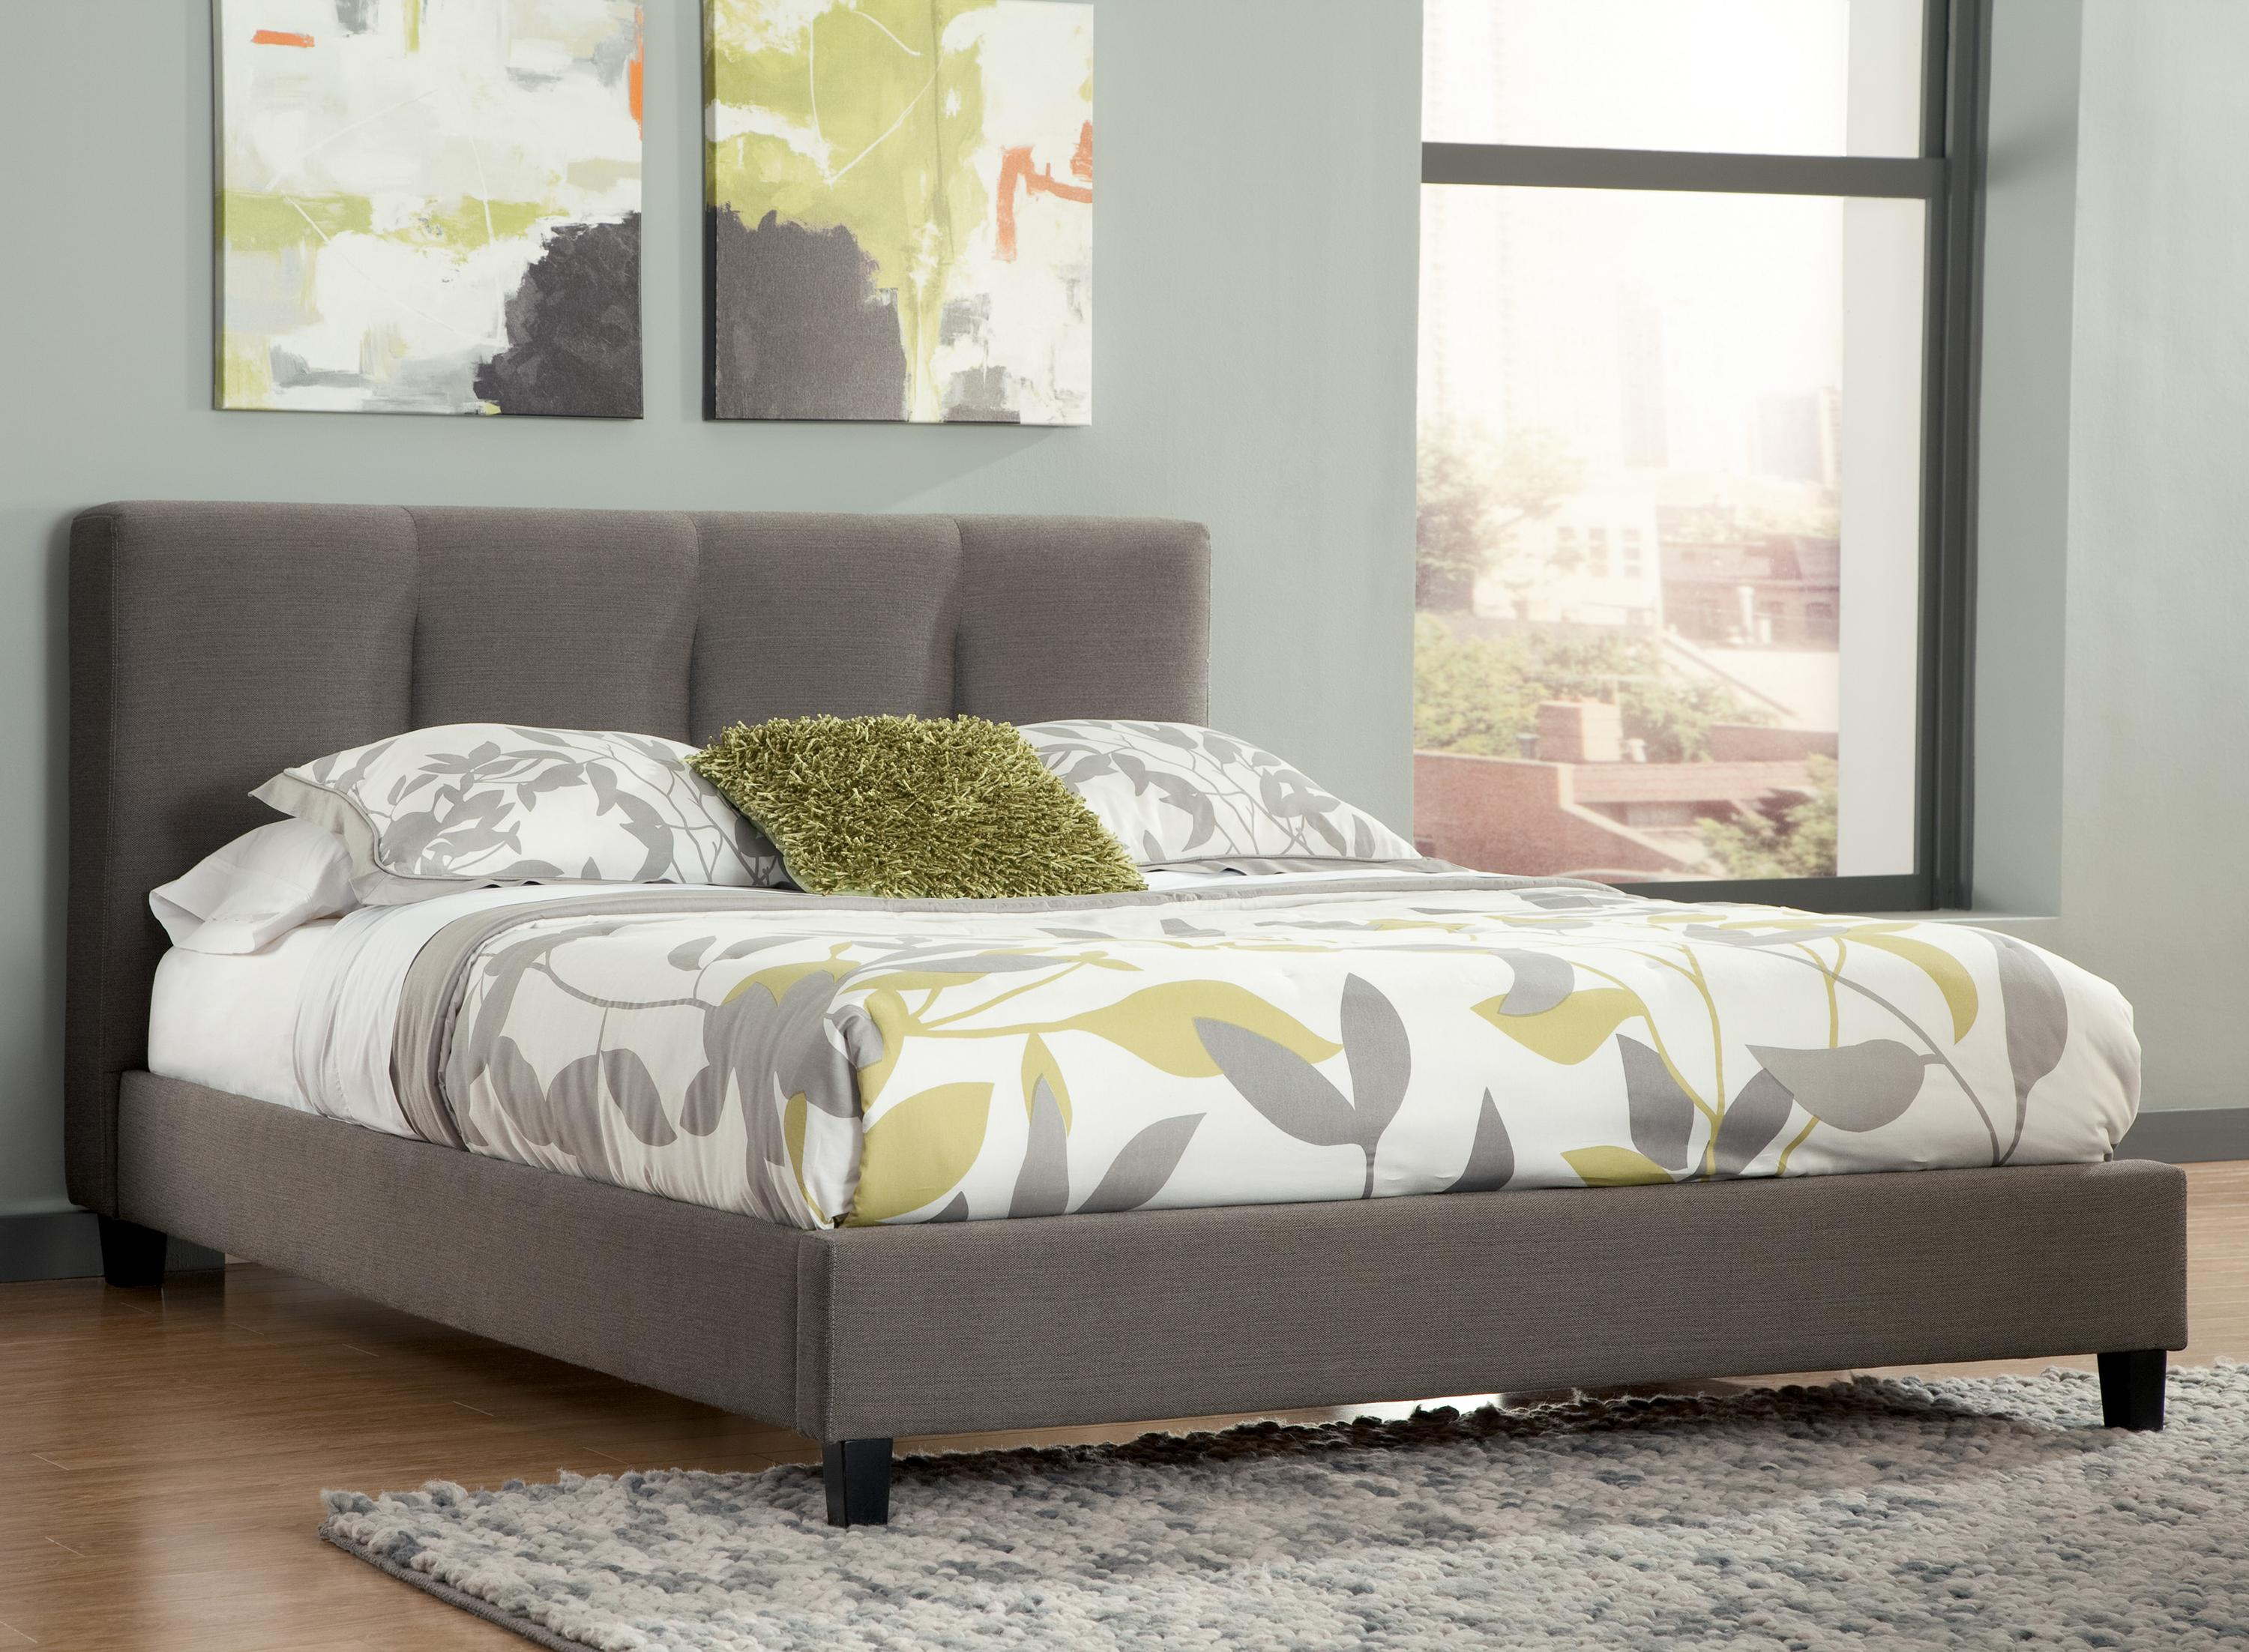 Signature Design by Ashley Masterton California King Upholstered Platform Bed - Item Number: B702-78+94